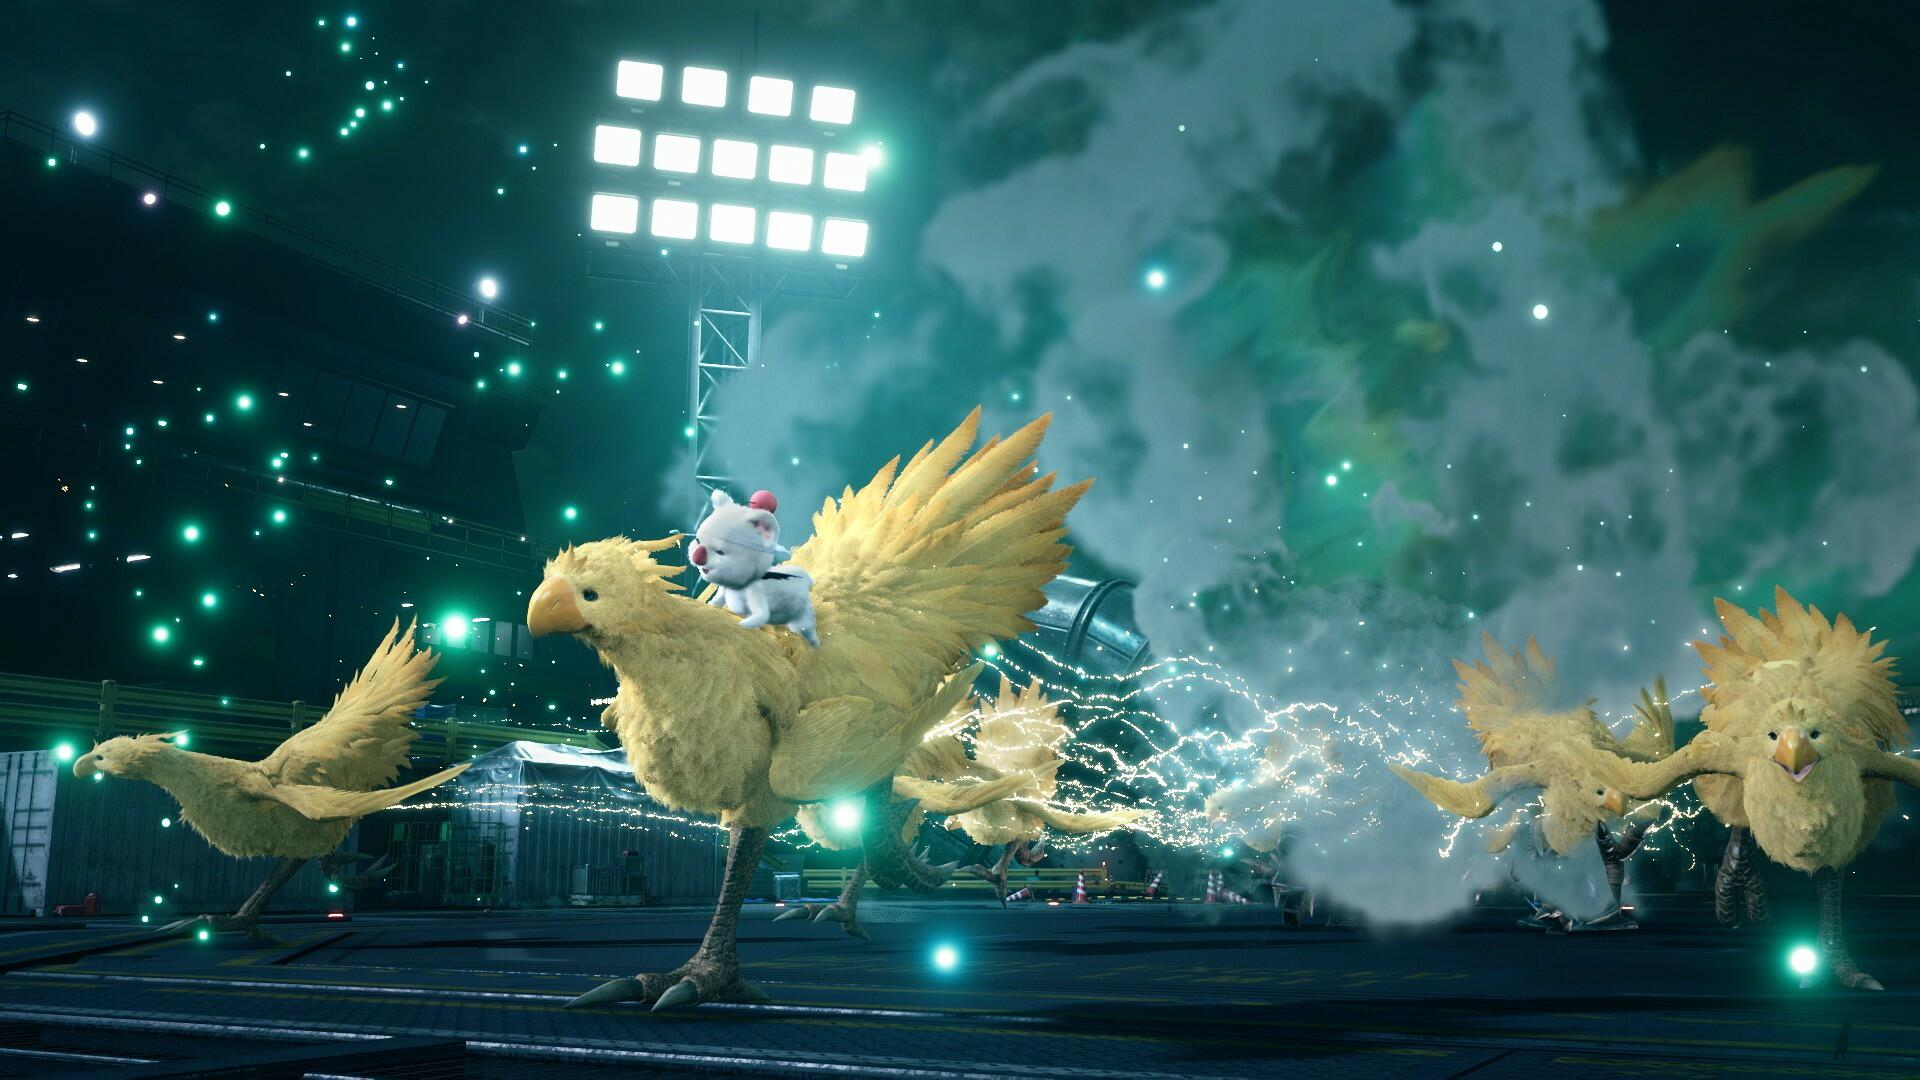 Final Fantasy 7 Remakes Chocobos Are Clearly Capable Of